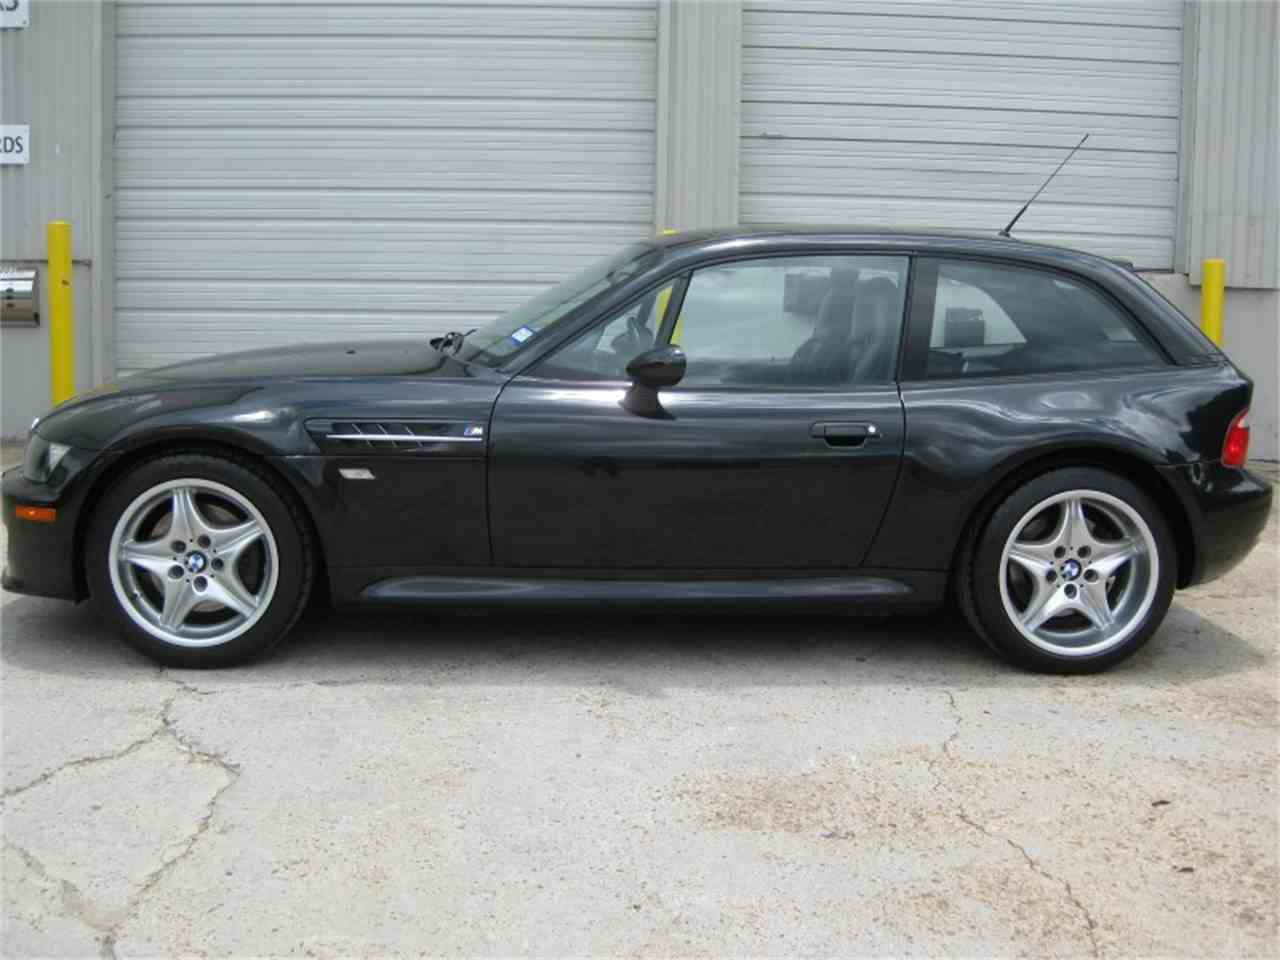 1999 Bmw Z3 M Coupe For Sale Classiccars Com Cc 990556